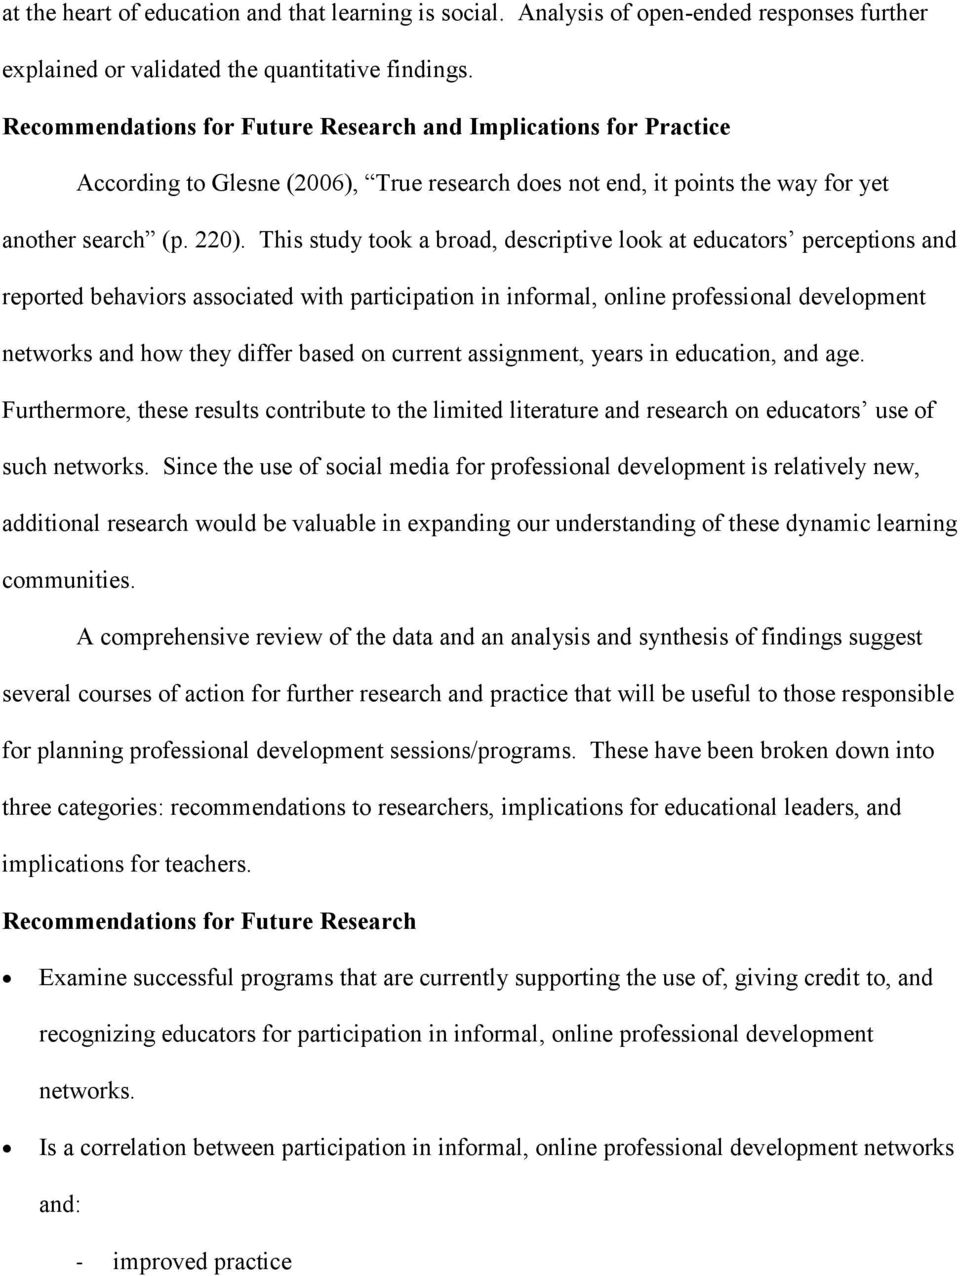 This study took a broad, descriptive look at educators perceptions and reported behaviors associated with participation in informal, online professional development networks and how they differ based